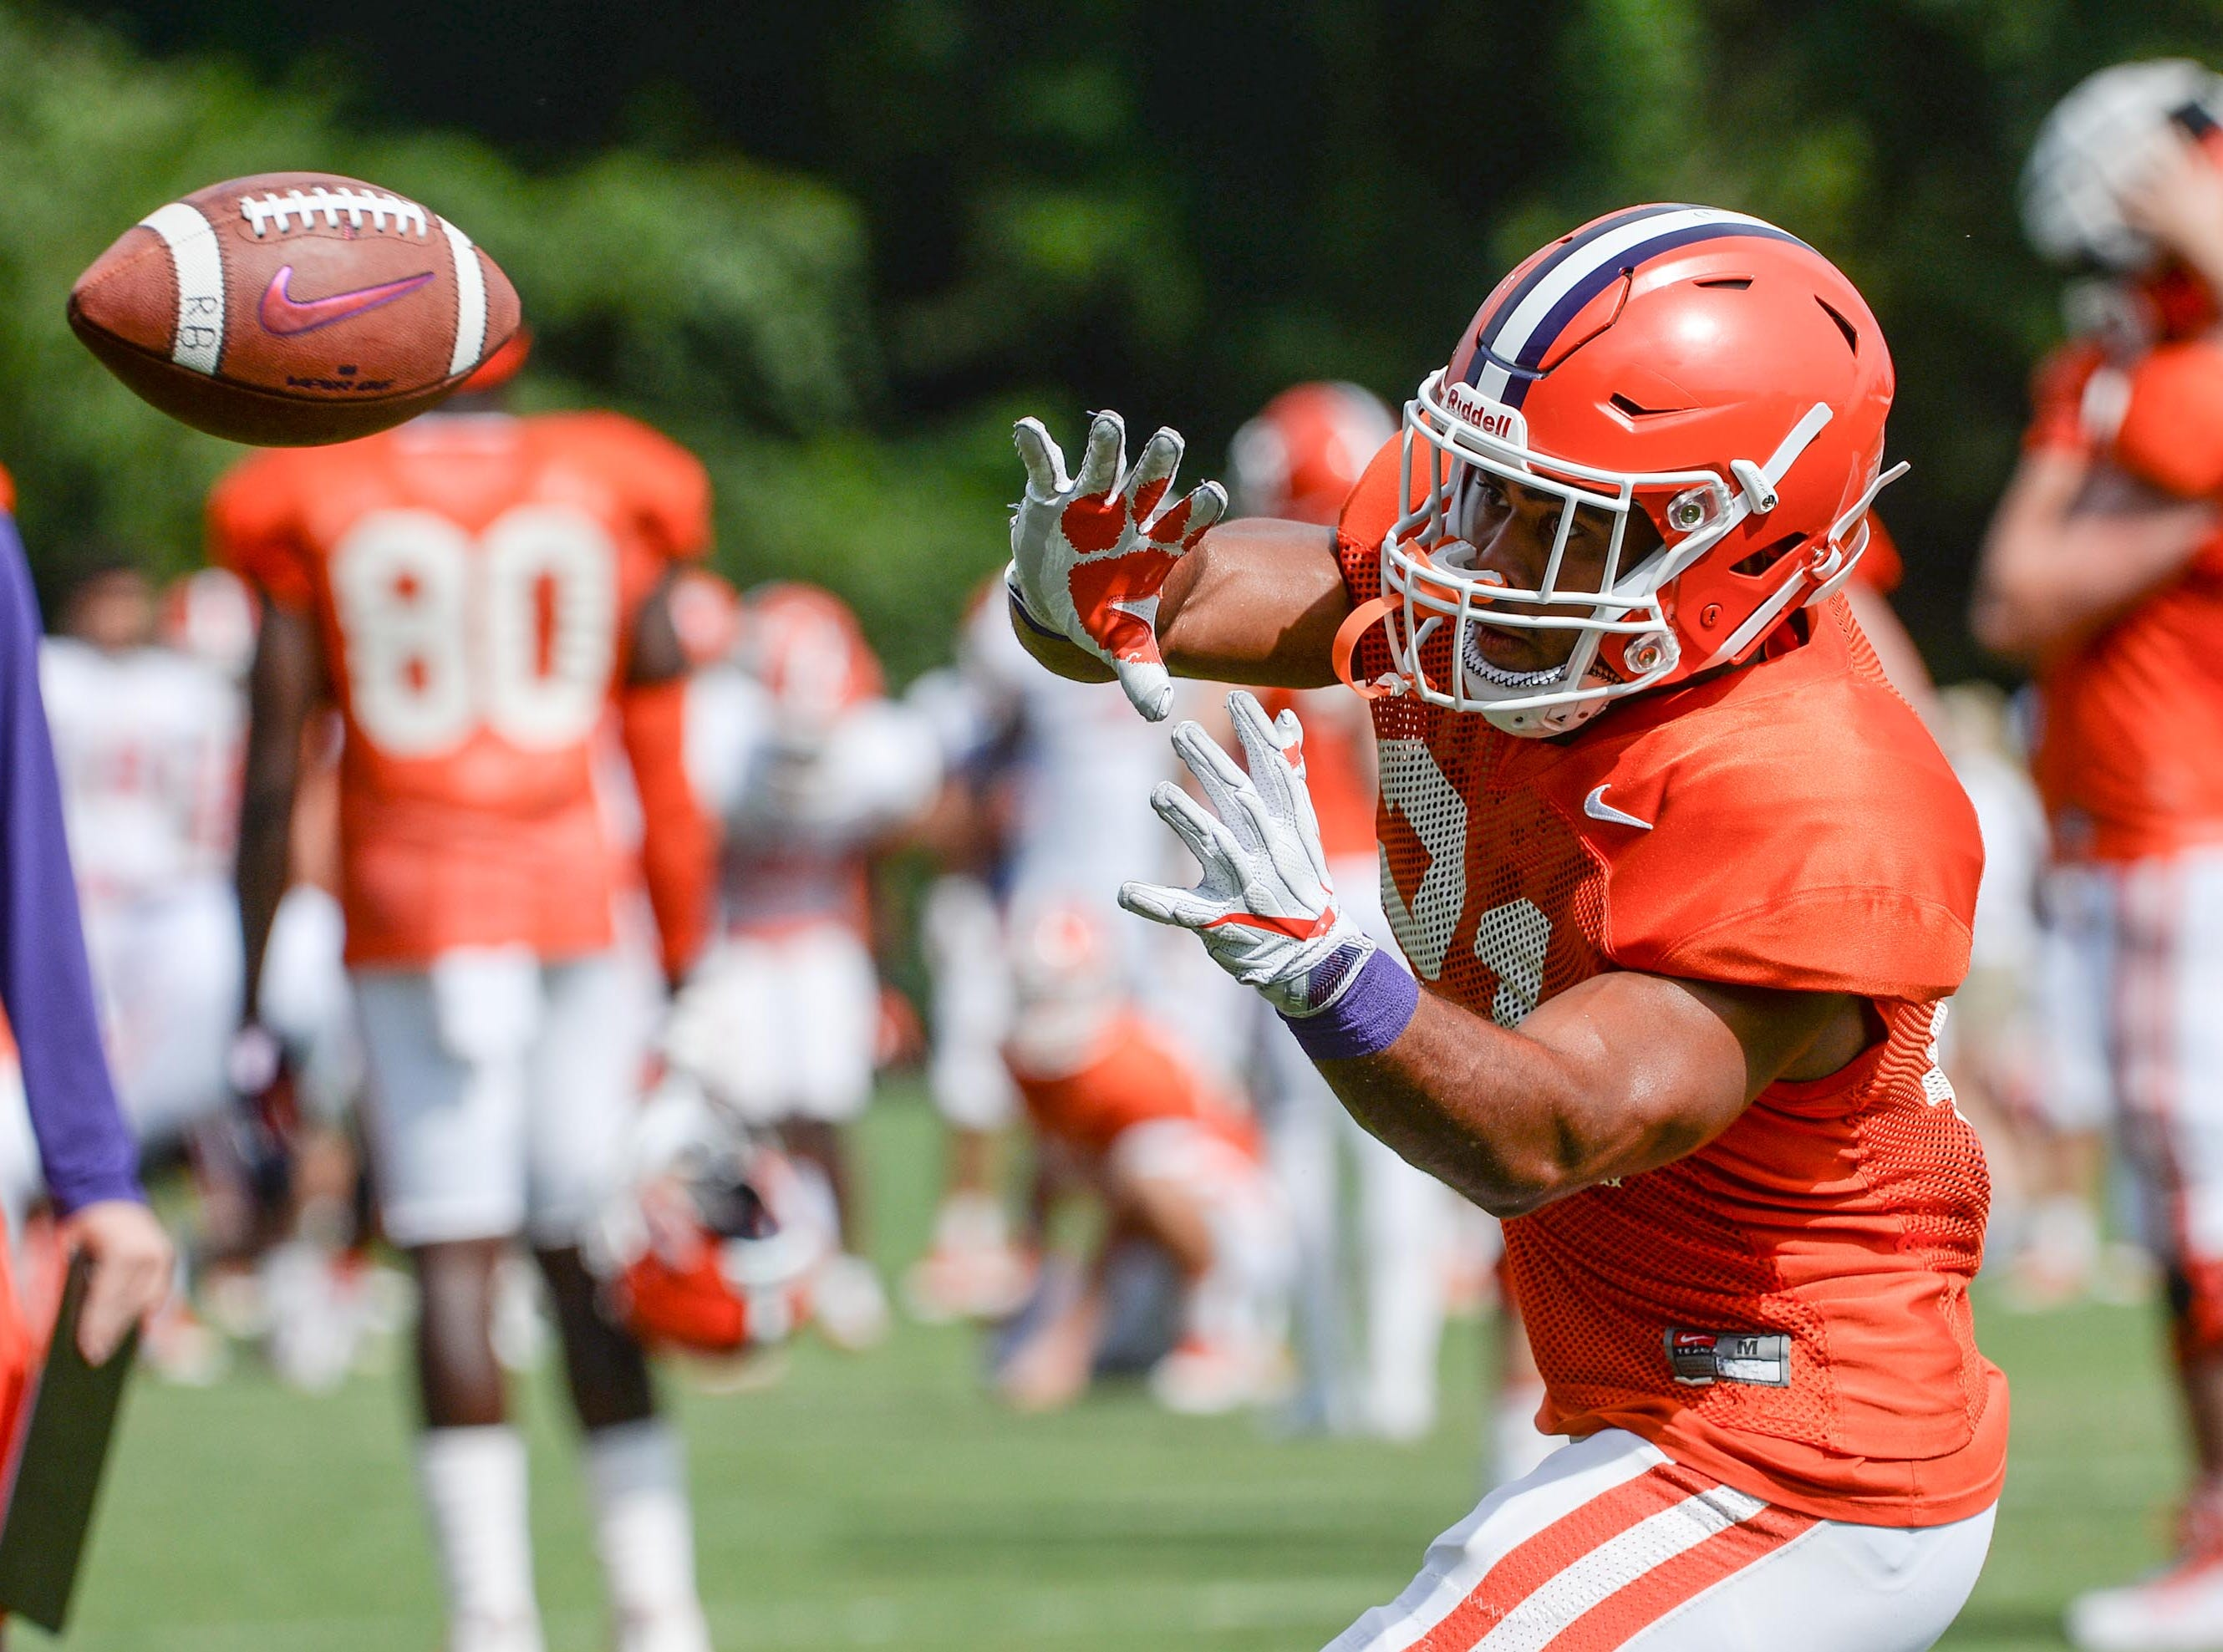 Clemson running back Darien Rencher (21) during fall practice in Clemson on Wednesday.